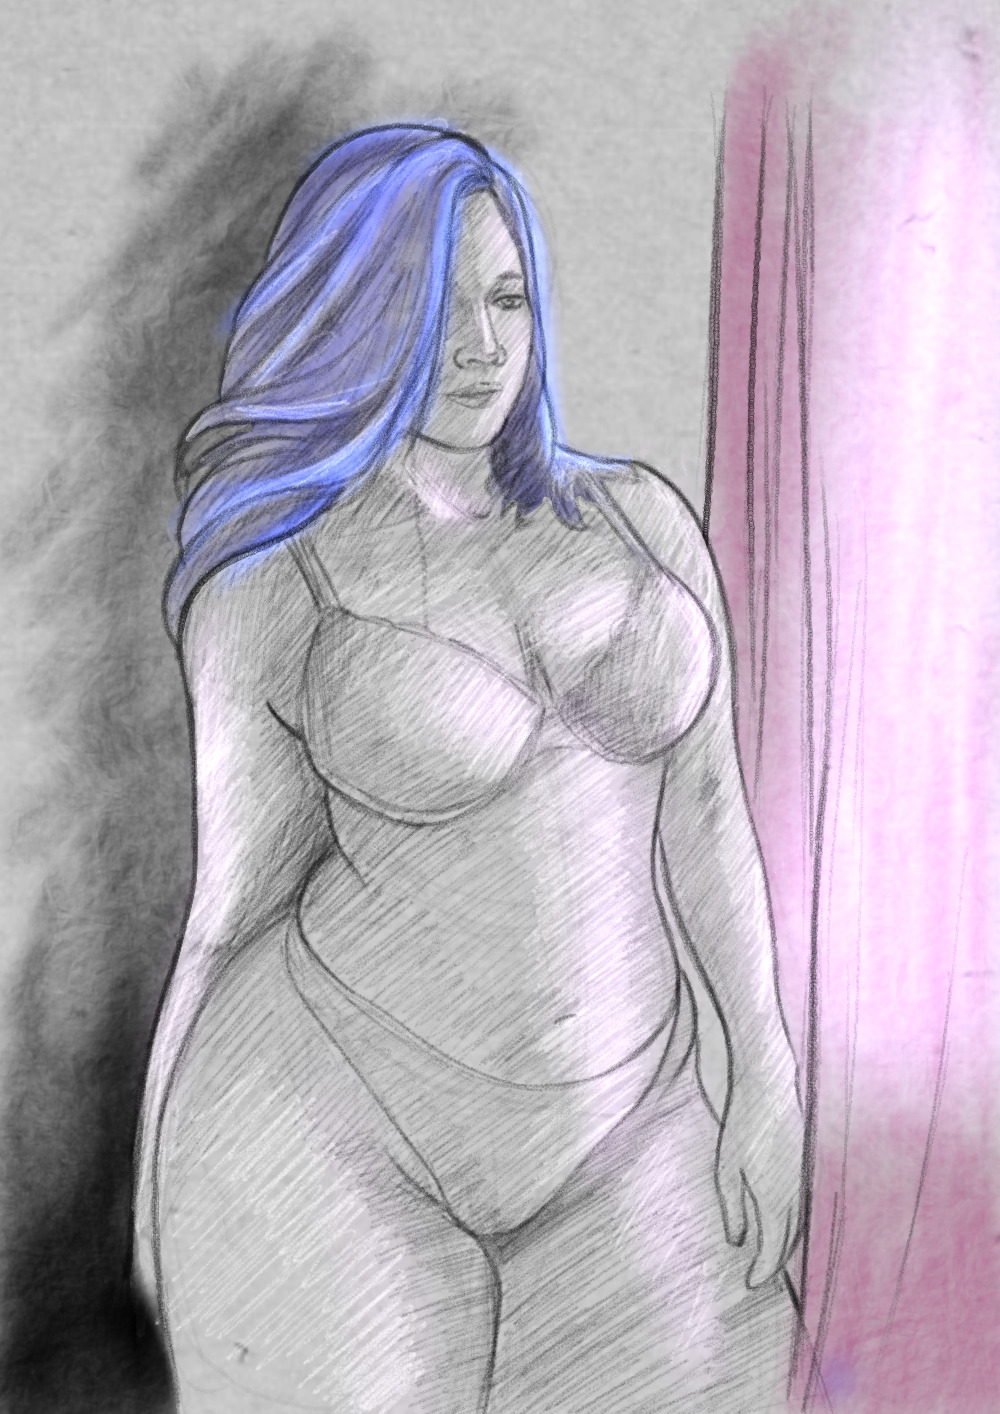 Naked thick girls drawings